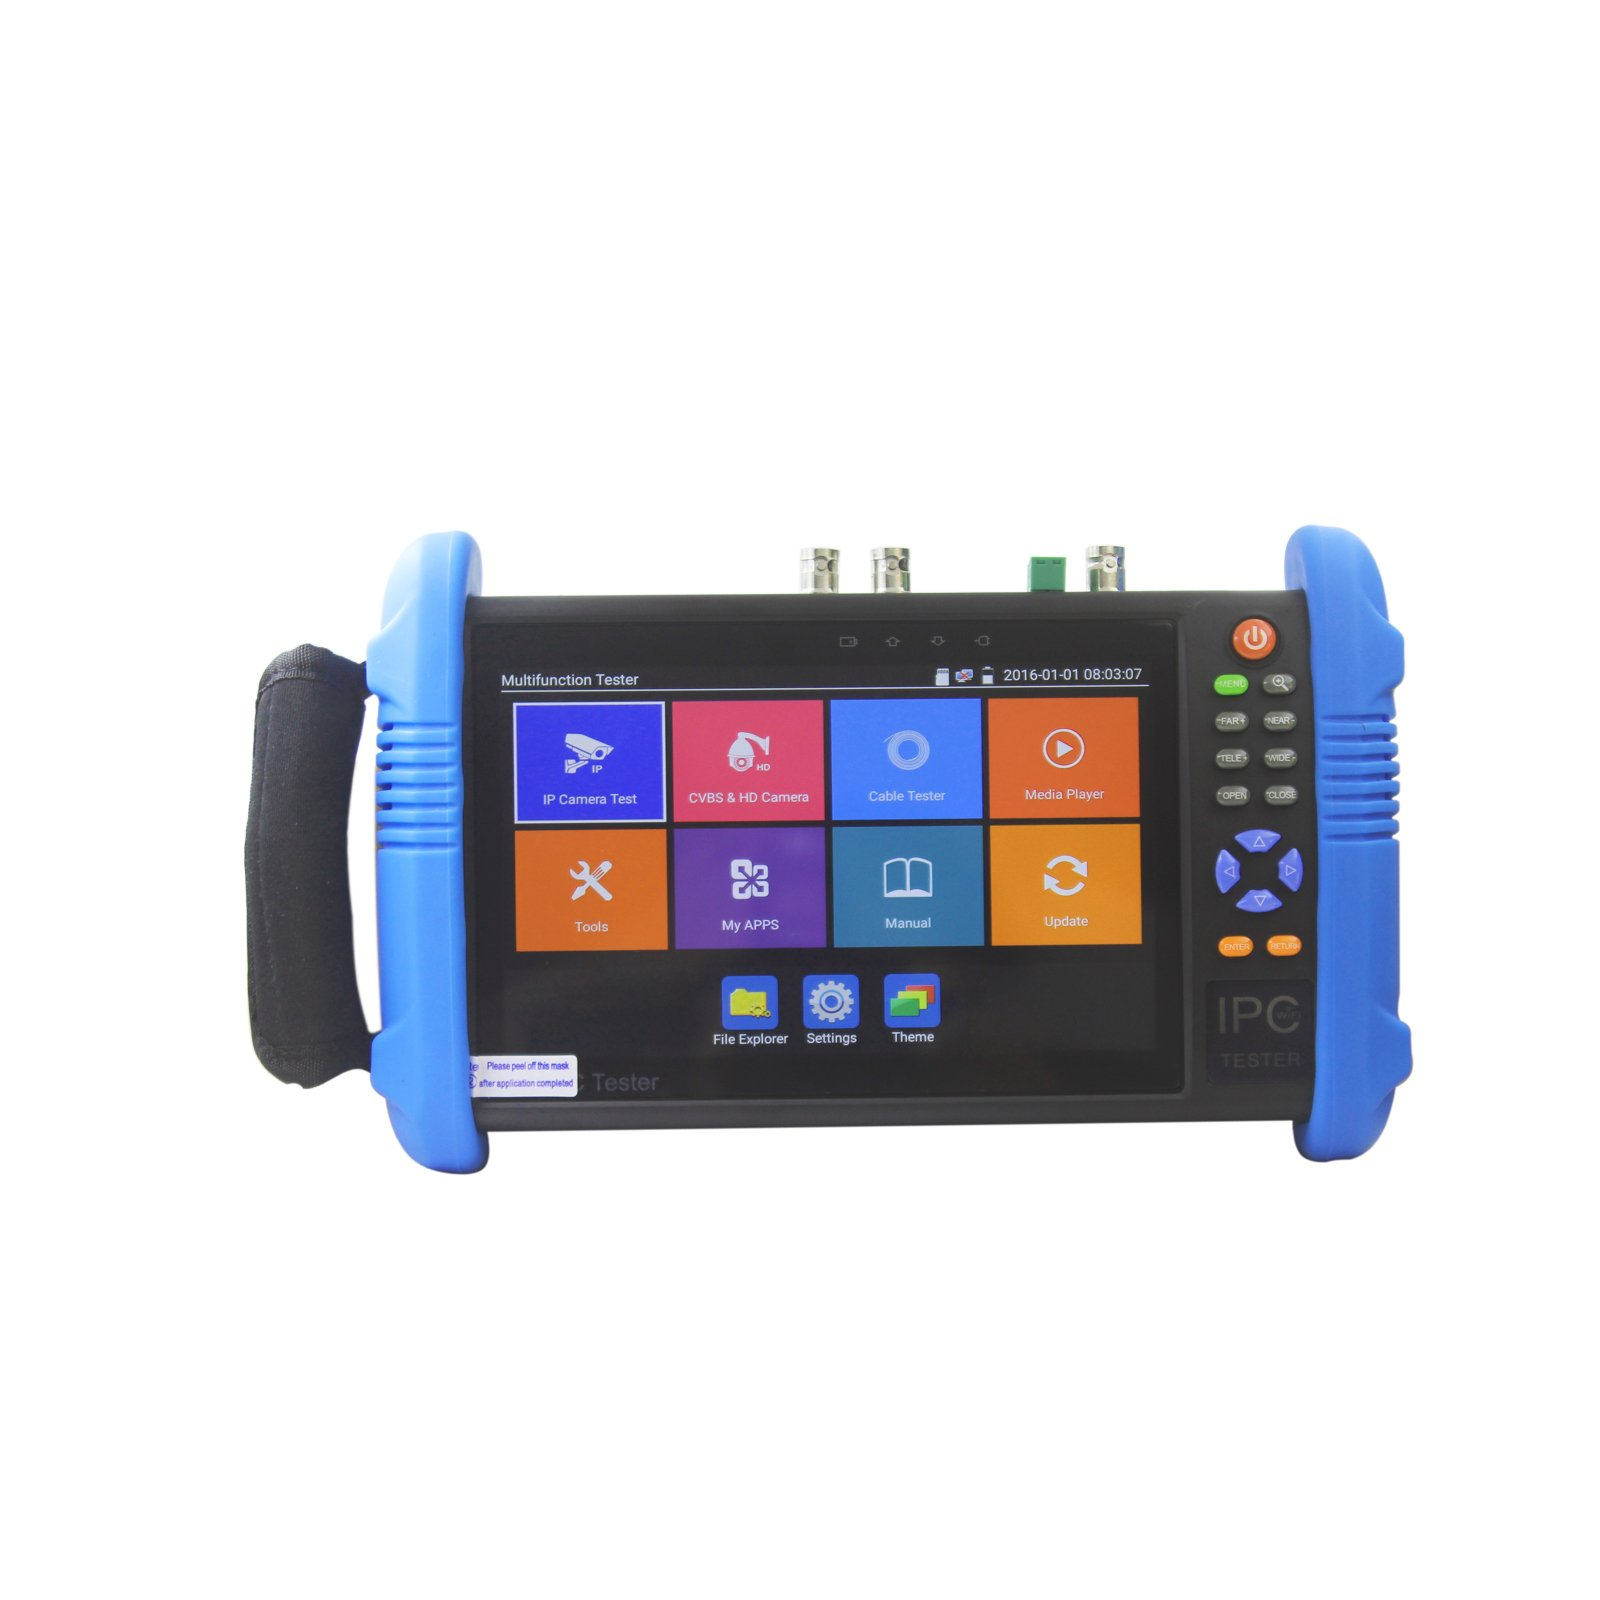 ETEKJOY IPC-9800ADHS-Plus CCTV IP&Analog Camera Tester Test 7-inch IPS Touch Screen Monitor CVBS Tester with HD-TVI/HD-CVI/AHD/SDI/POE/WIFI/8G TF Card/4K H.265/HDMI In & Out/RJ45 TDR/Firmware Upgraded by ETEKJOY